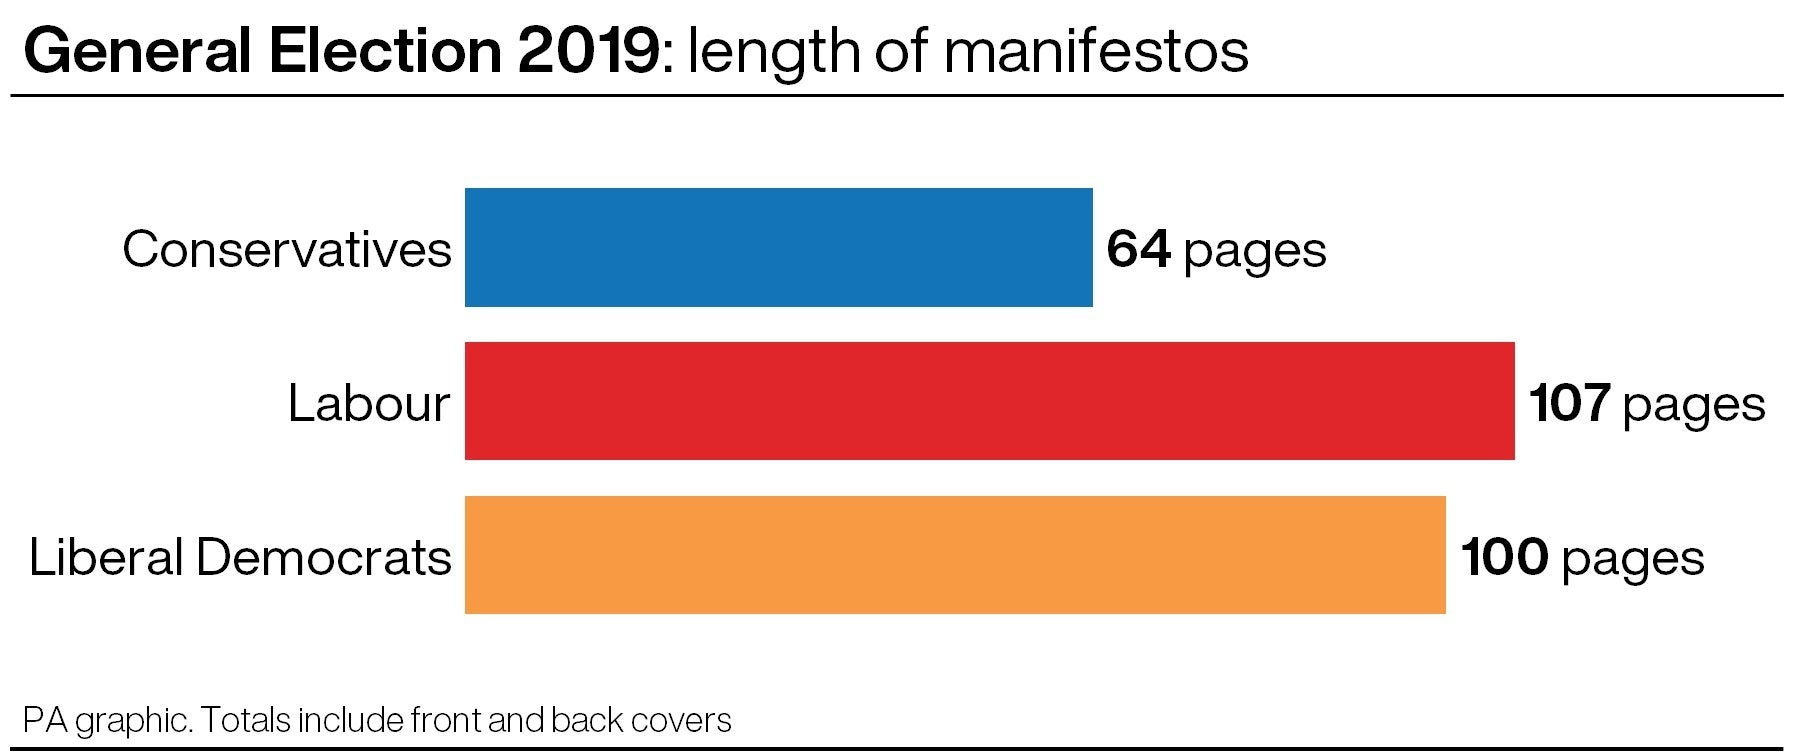 A comparison of the length of the manifestos of the main parties